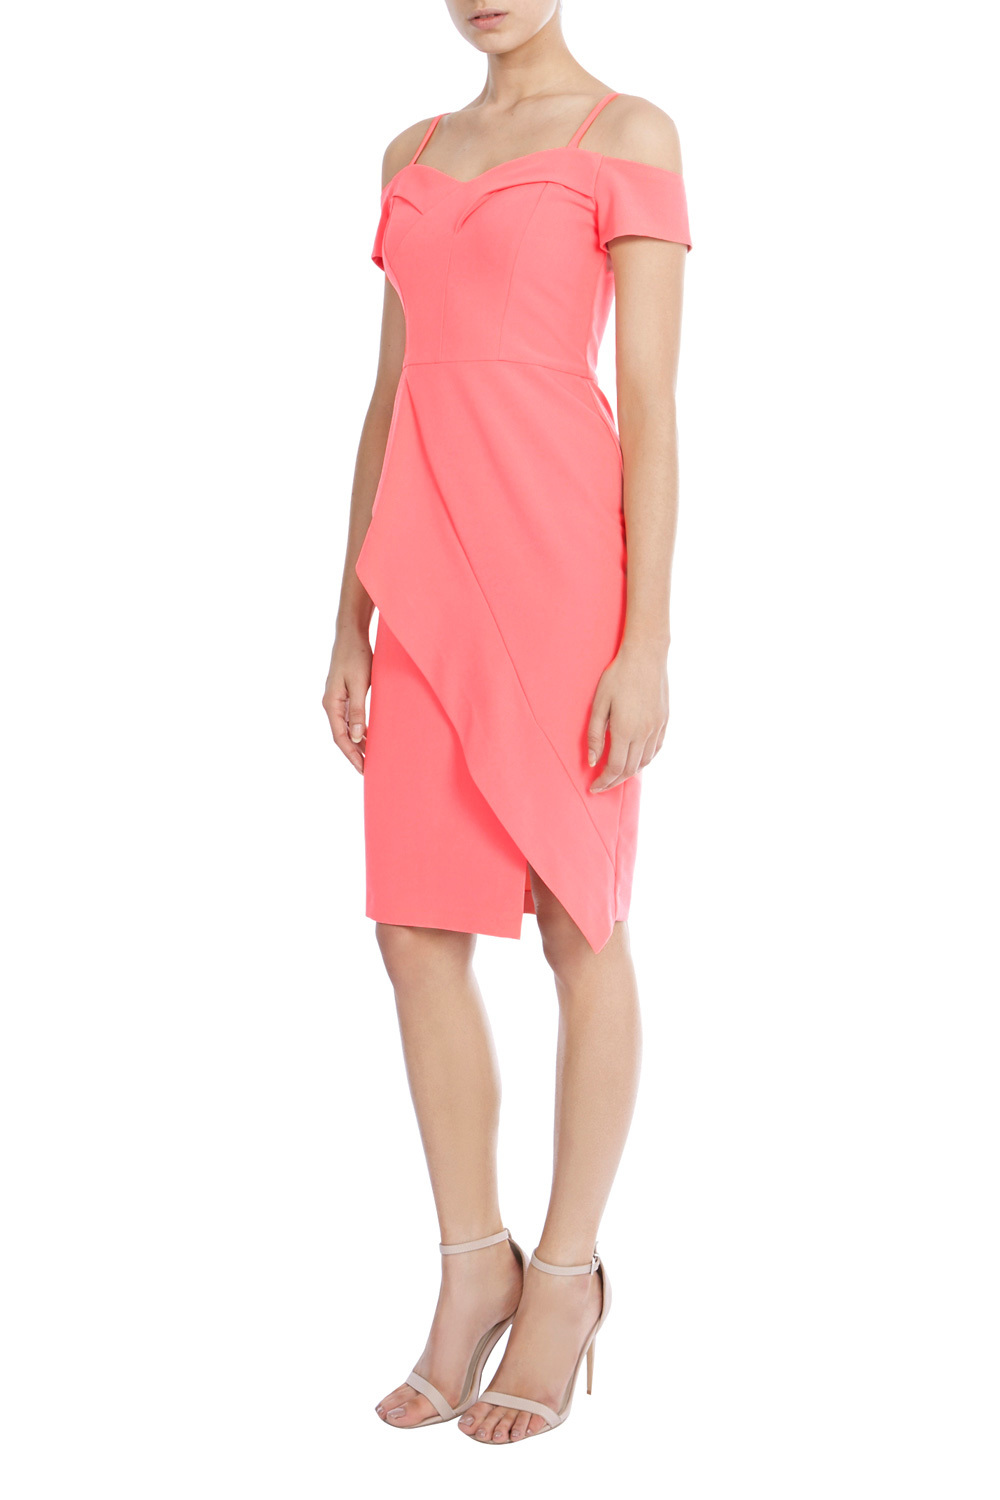 Briody Bardot Shift Dress D - style: shift; neckline: off the shoulder; fit: tailored/fitted; pattern: plain; hip detail: draws attention to hips; predominant colour: coral; occasions: evening, occasion; length: on the knee; fibres: polyester/polyamide - 100%; sleeve length: short sleeve; sleeve style: standard; texture group: crepes; pattern type: fabric; season: s/s 2016; wardrobe: event